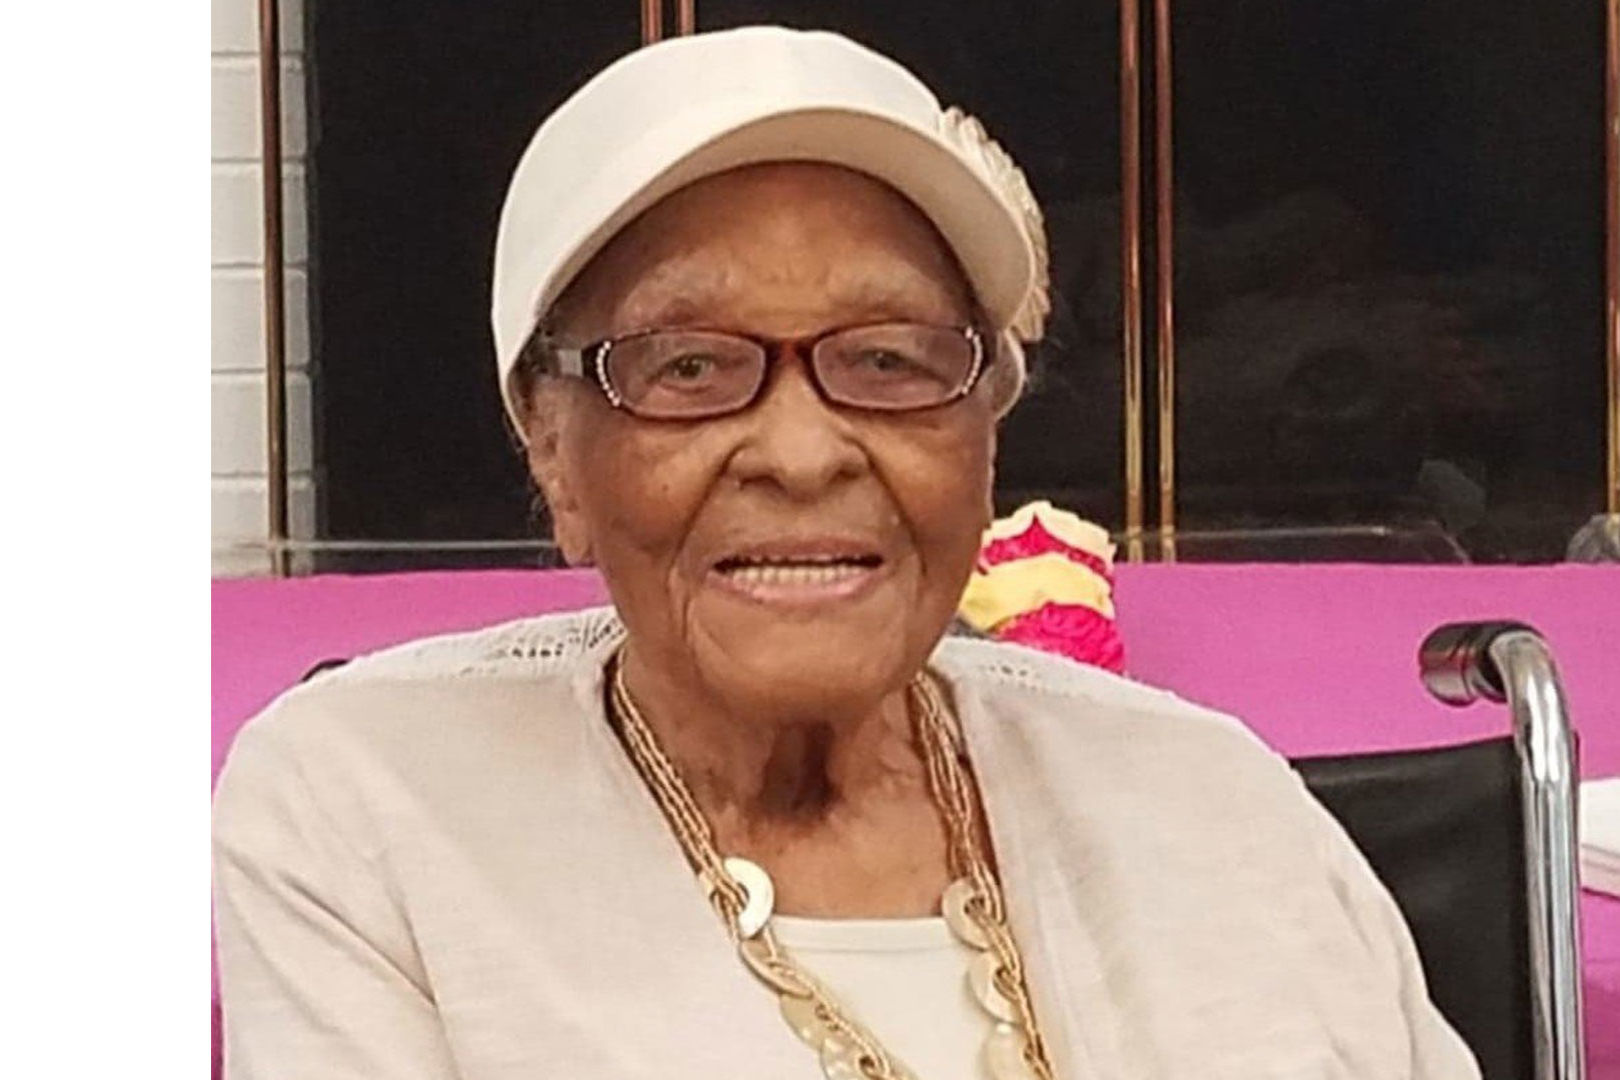 WATCH: Oklahoma Woman Celebrating Her 110th Birthday Just Wants Cards